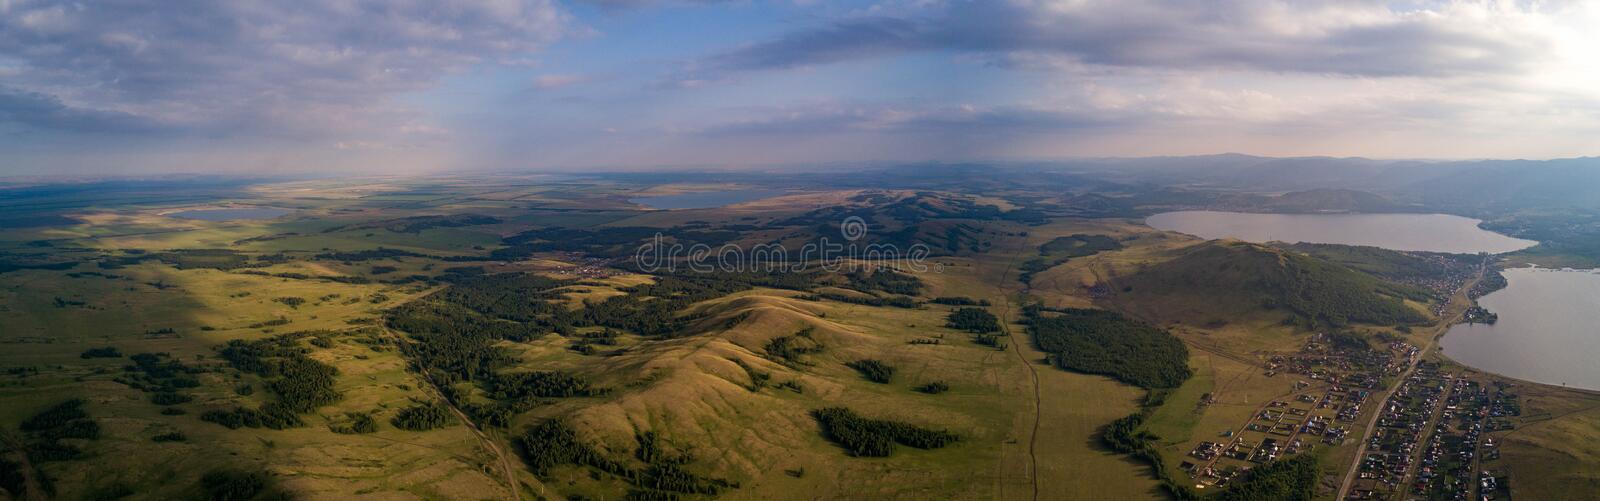 Panoramic view from drone of the fields near mountains stock photos